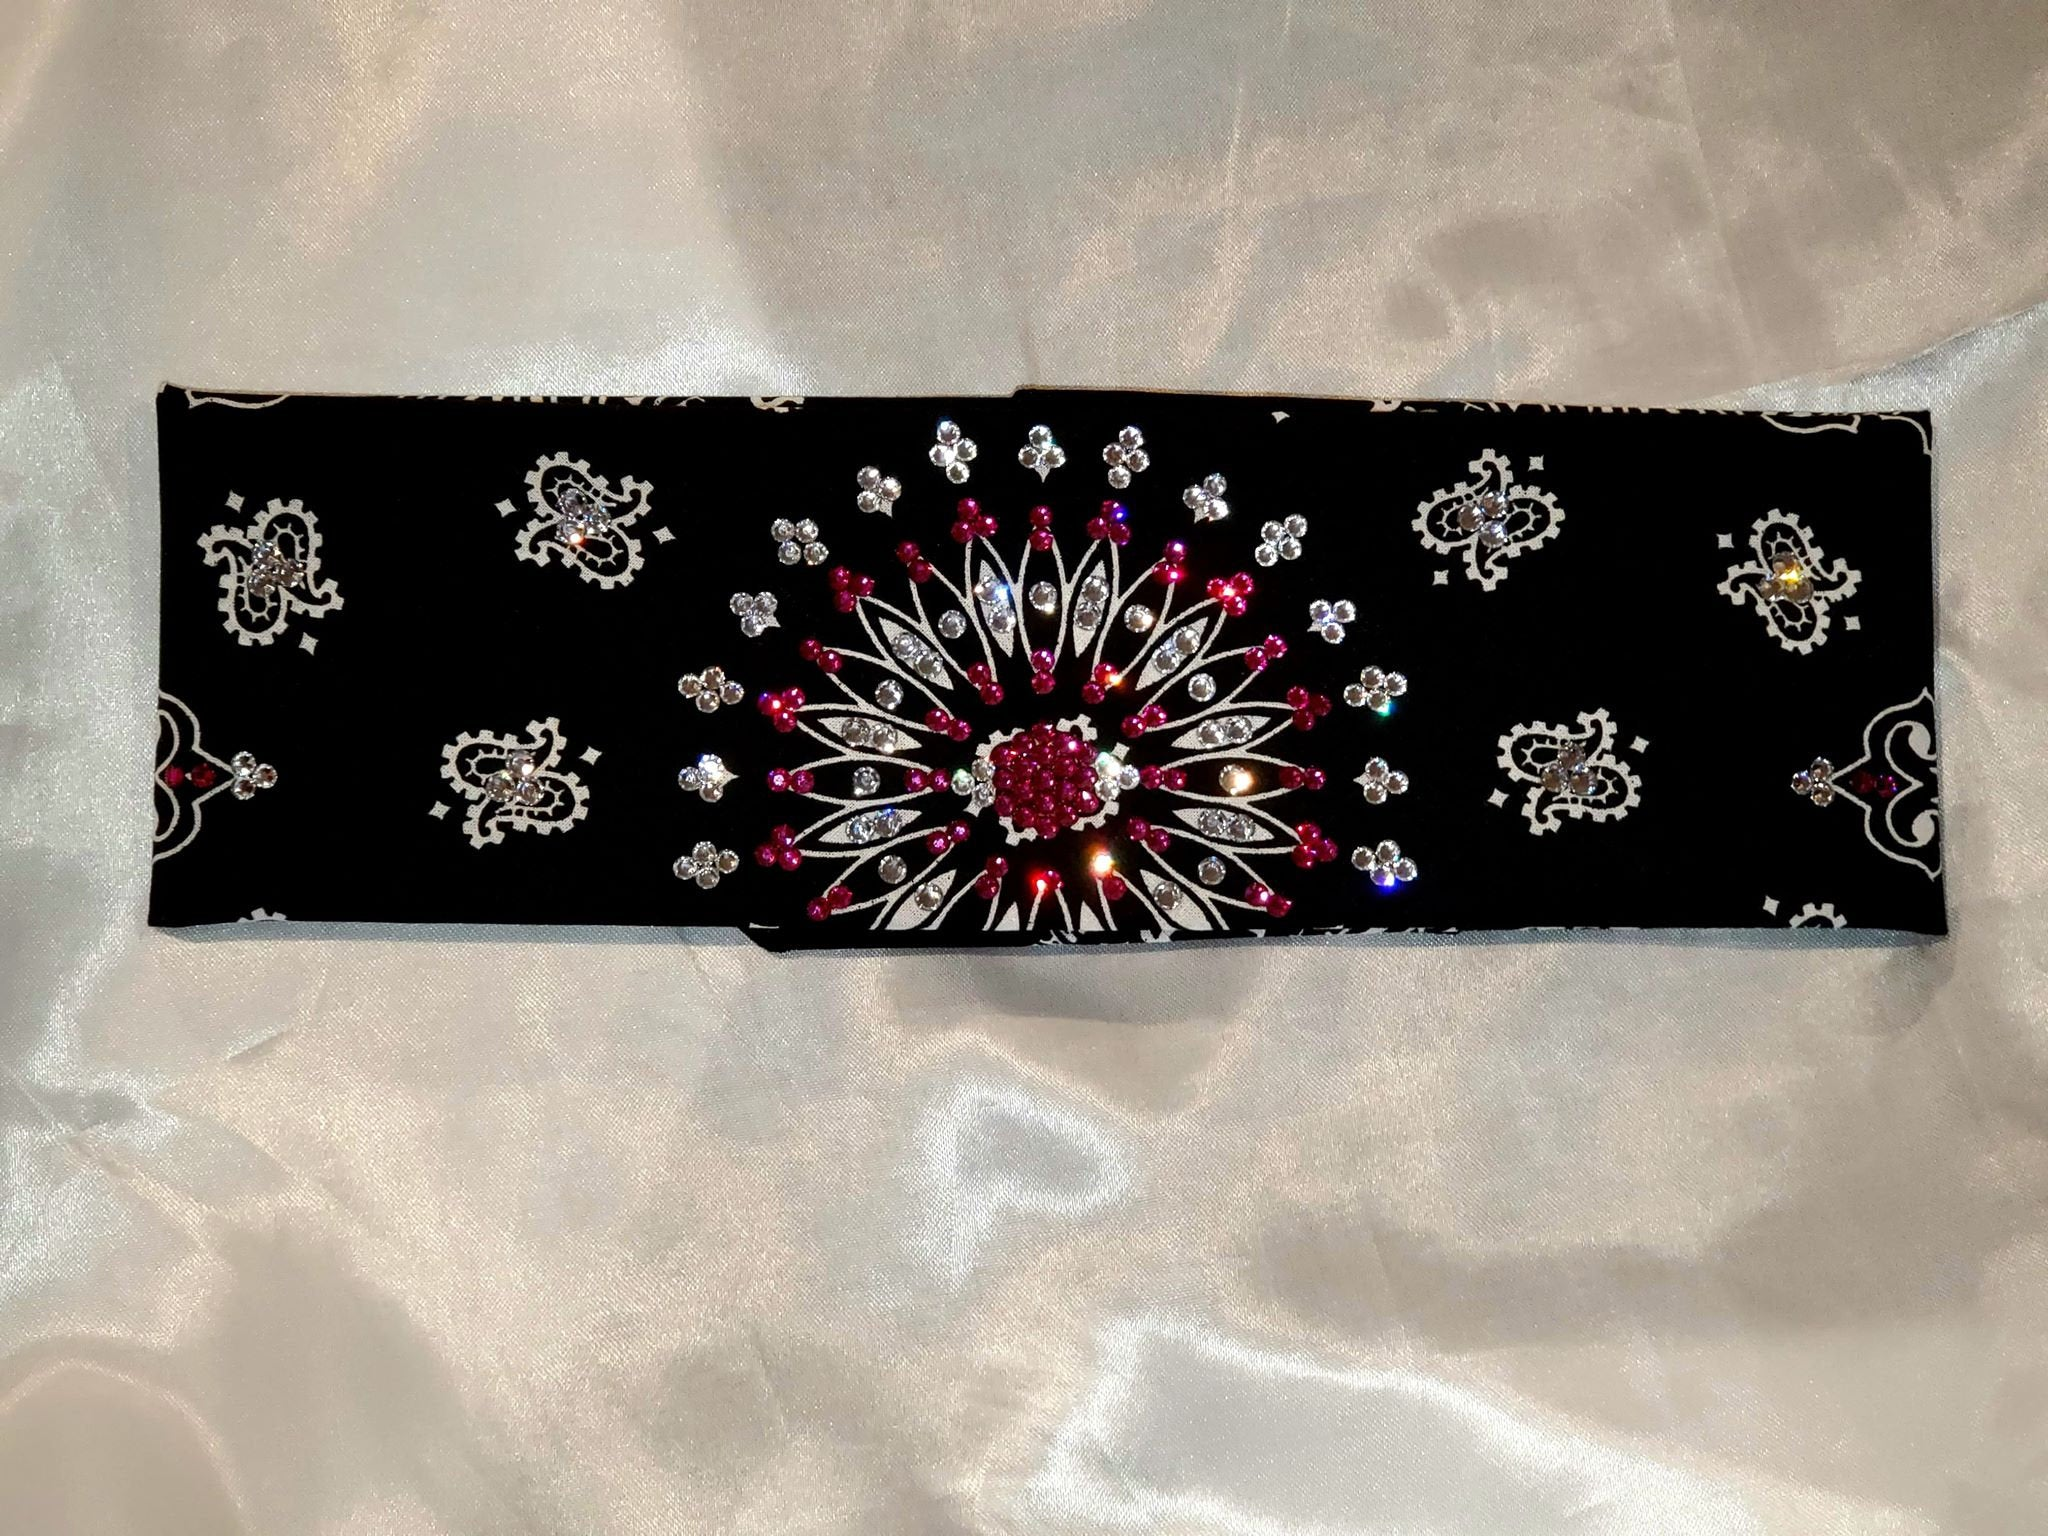 EXTRA BLING - Black Paisley With Fuchsia and Diamond Clear Swarovski Crystals (Sku4604)